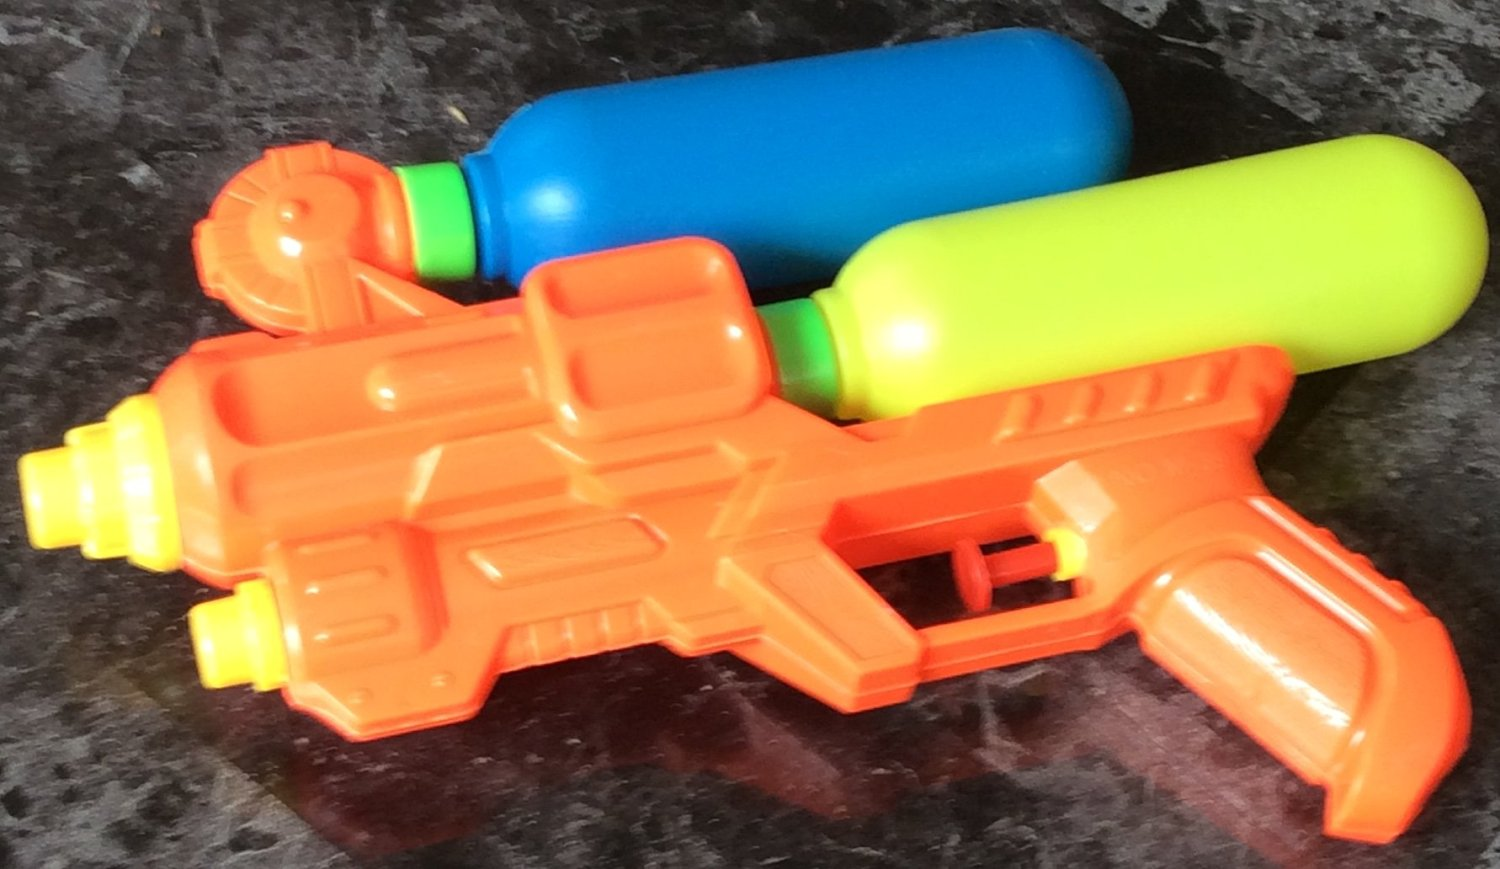 Big Water Gun with double tanks with long shooting range